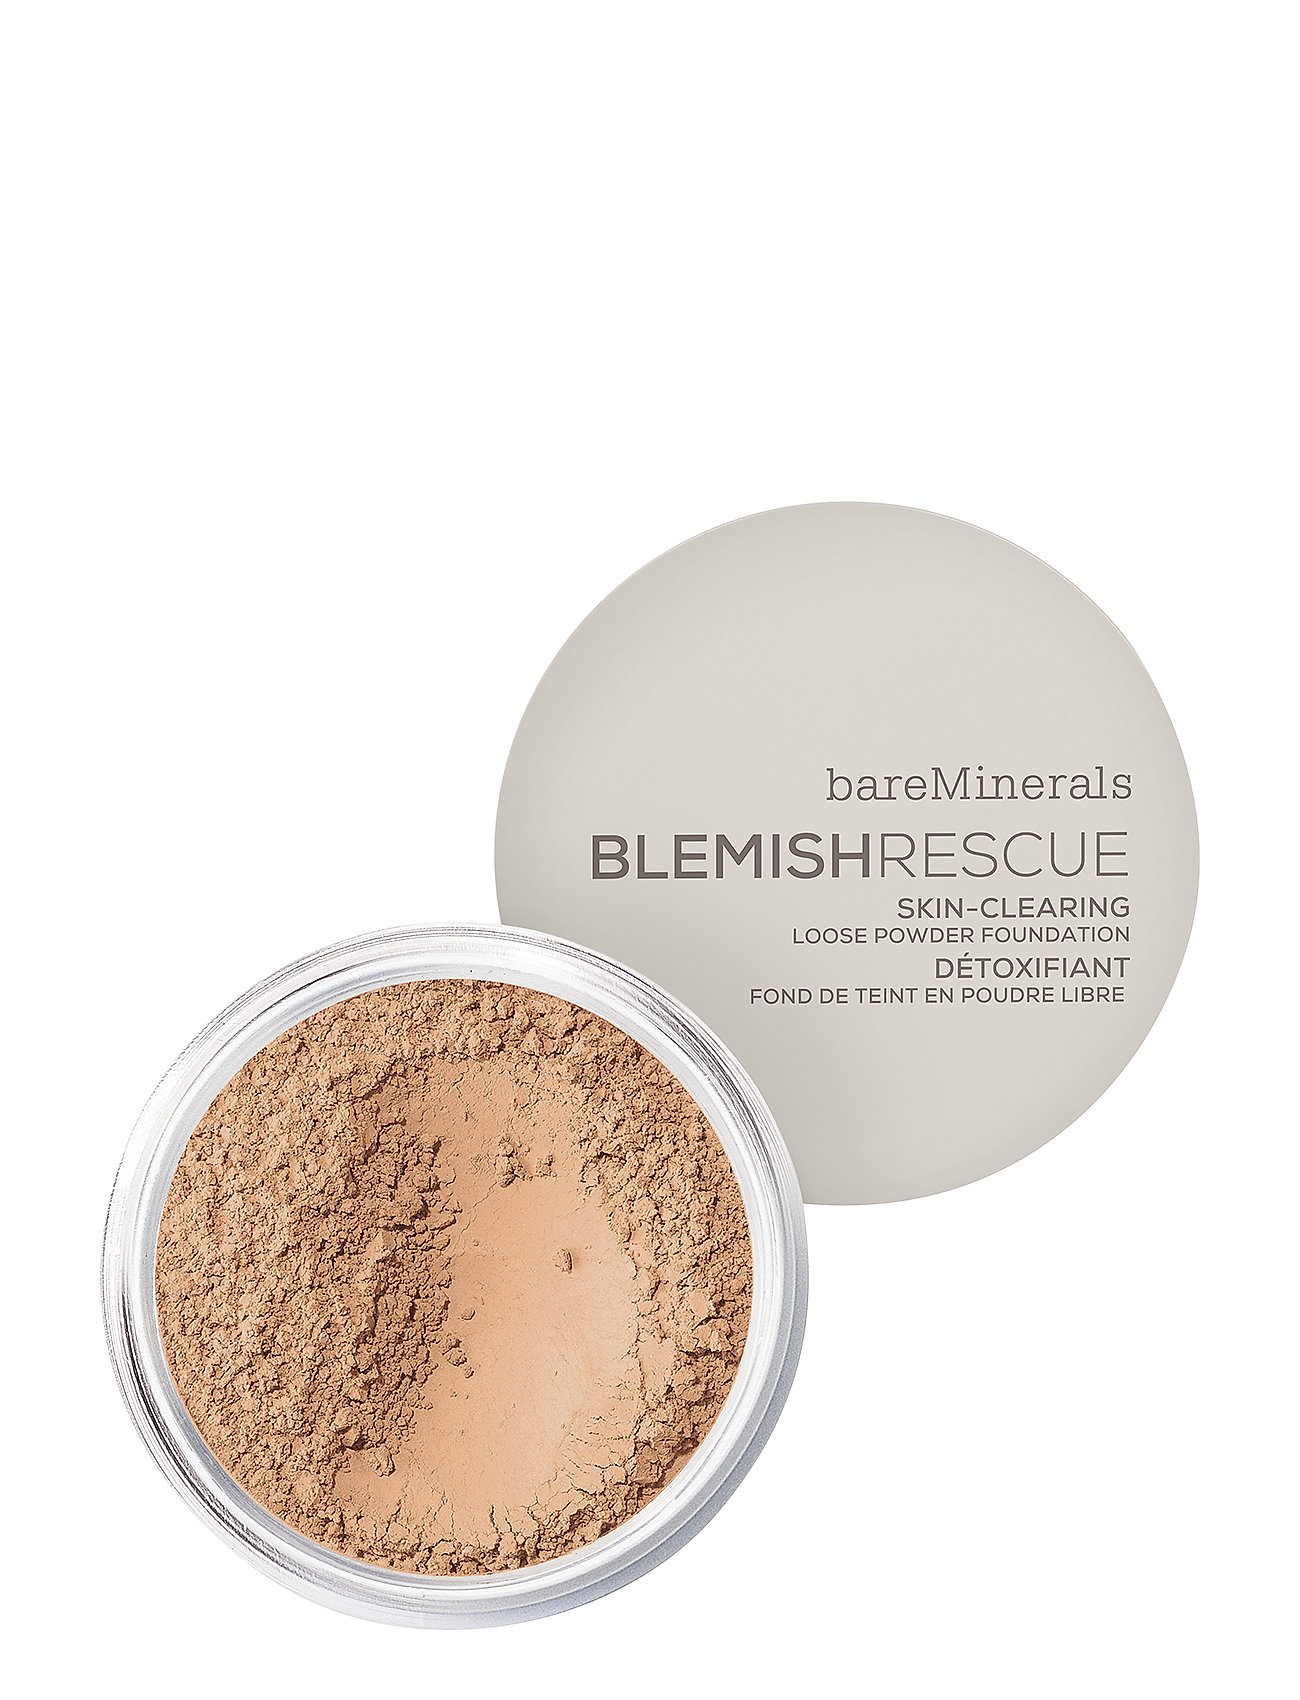 Image of Blemish Rescue Skin-Clearing Loose Powder Foundation Foundation Makeup BareMinerals (3330696183)